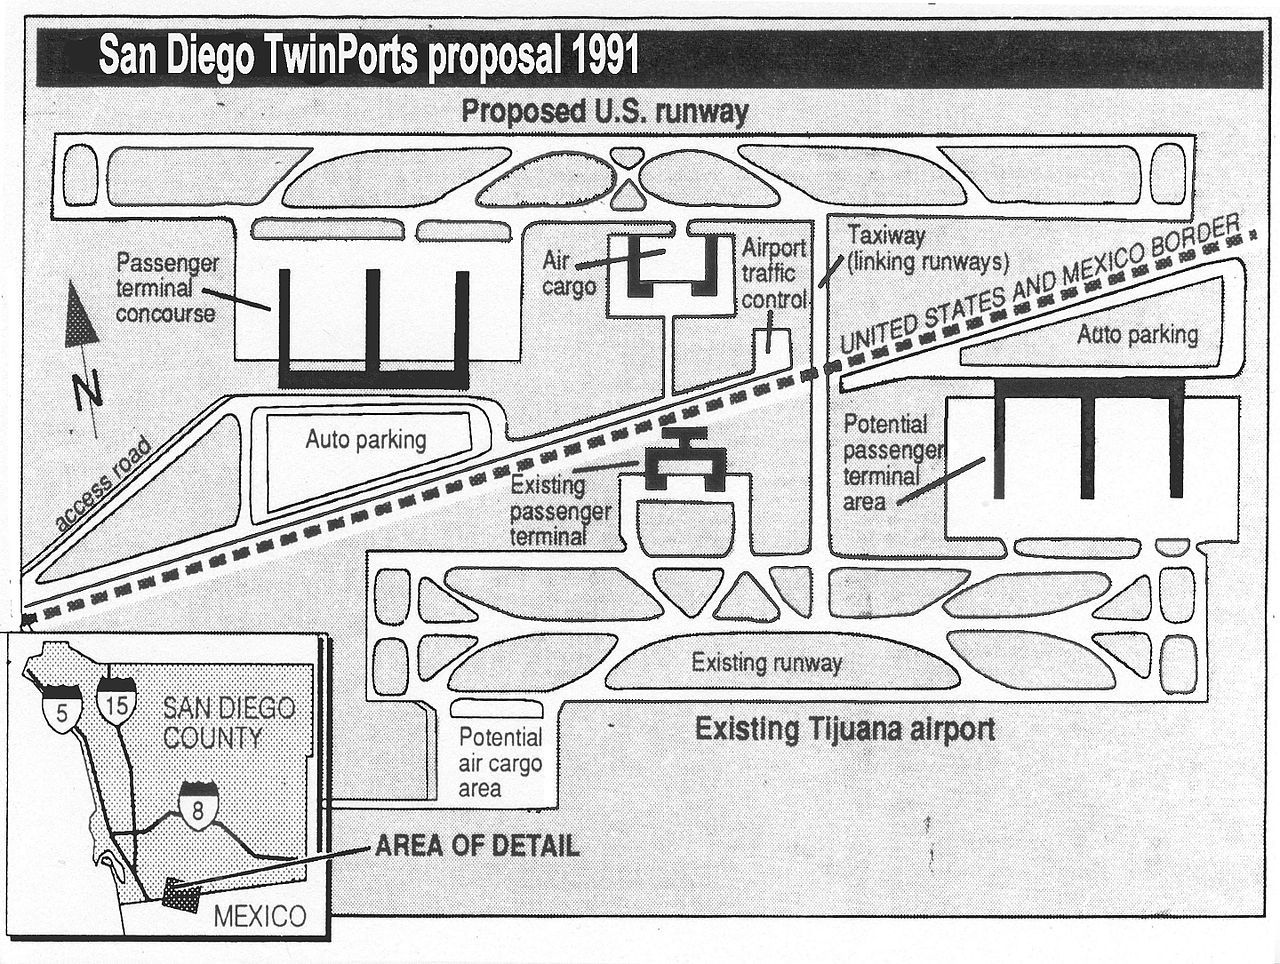 Image 5 San Diego Twinports Airport Proposal 1991 Air Cargo Cross Border Xpress Tijuana